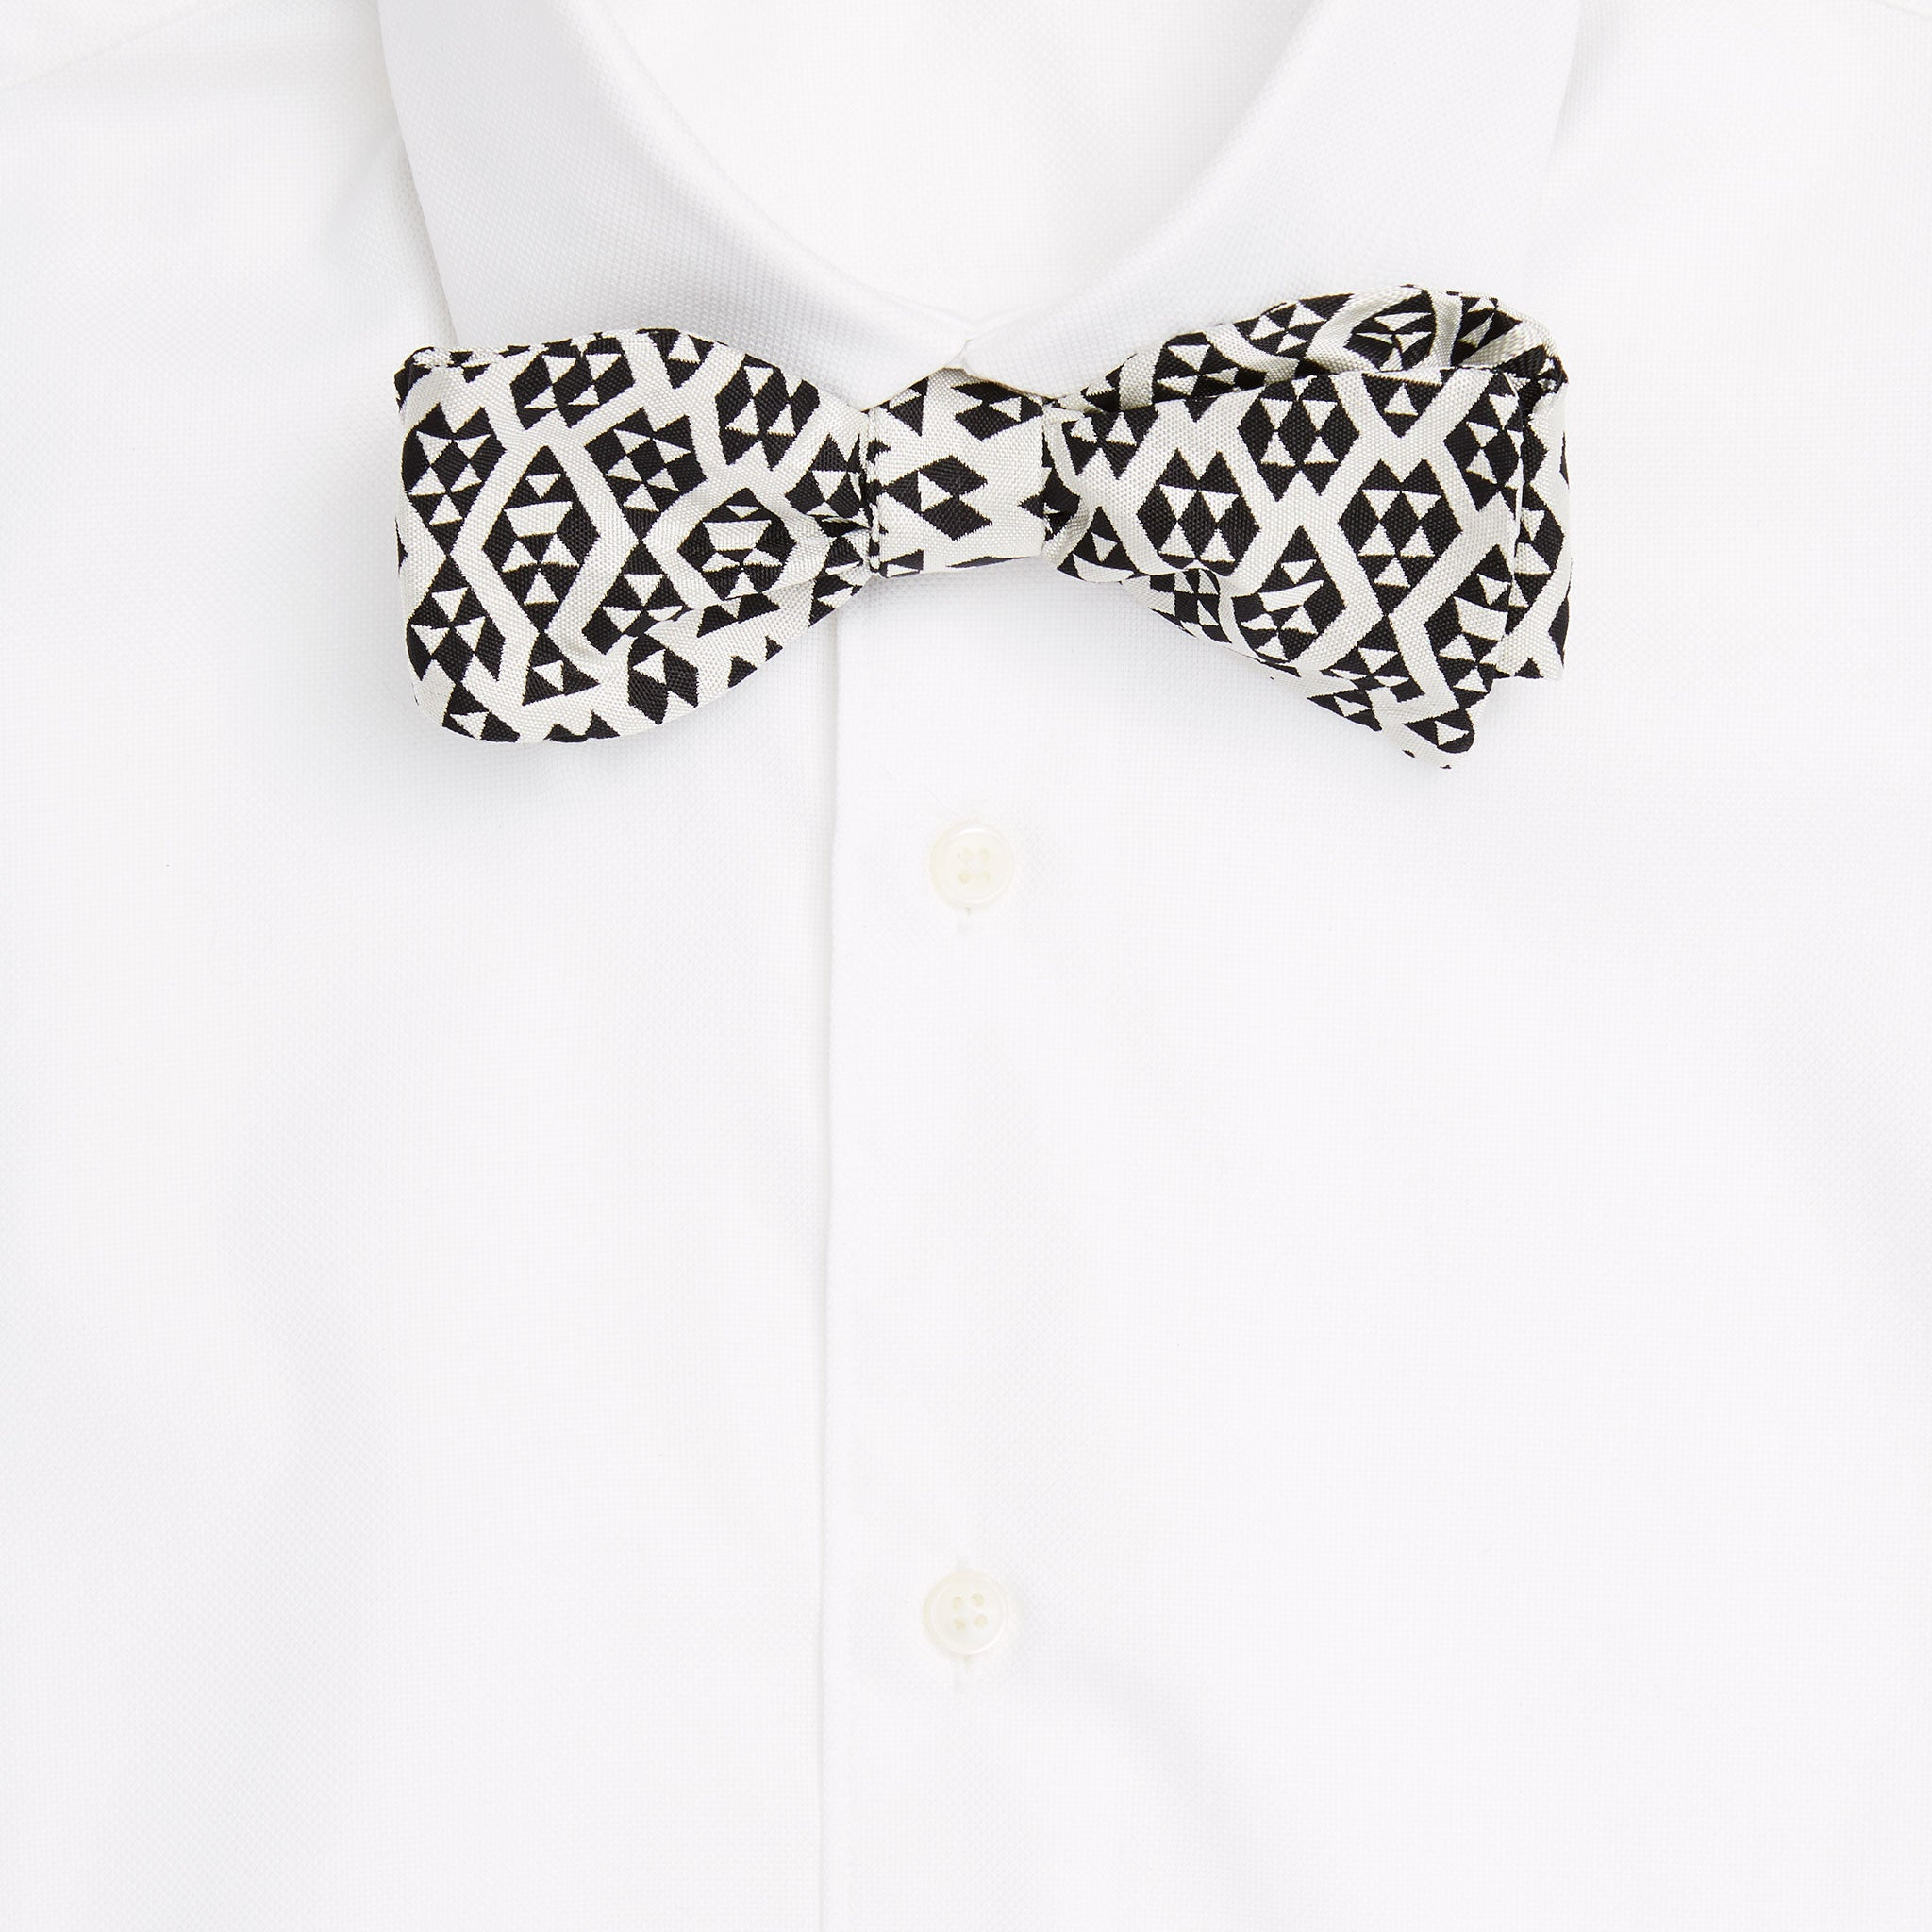 Harlequin Silk Jacquard Self-Tie Bow Tie